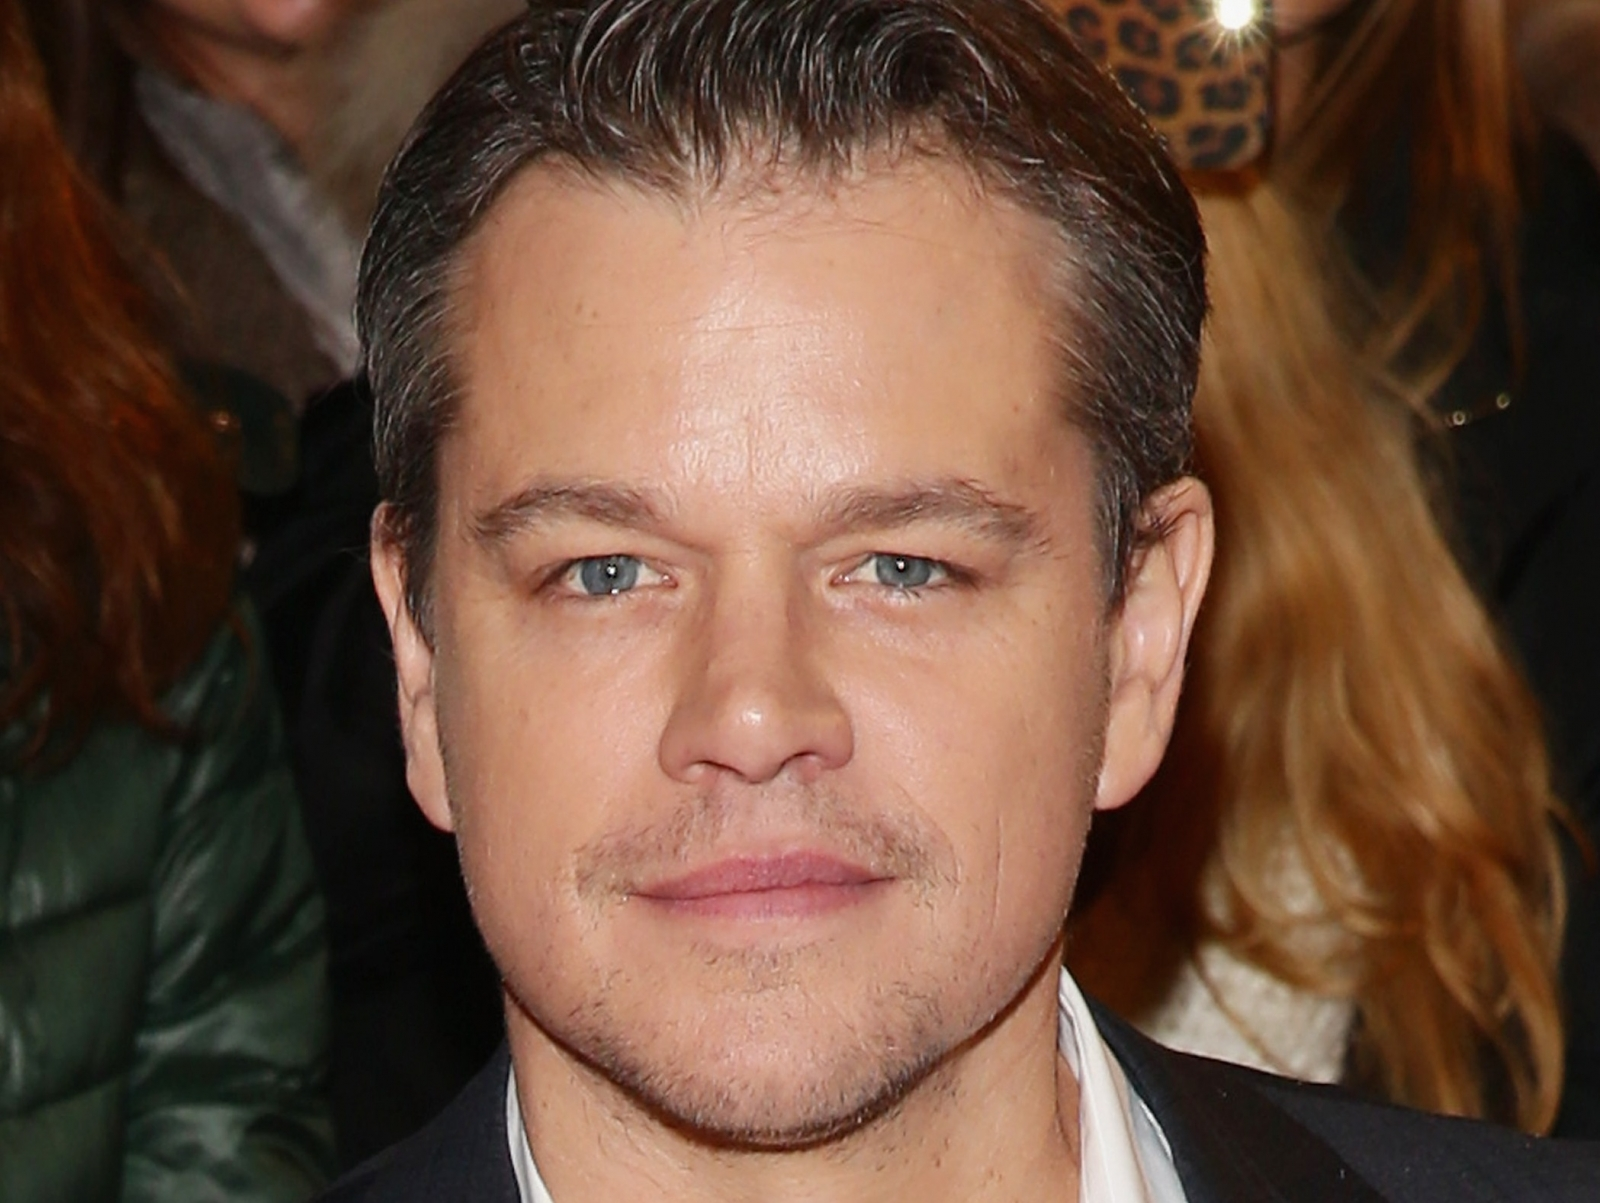 Matt Damon attends 'The Monuments Men' premiere